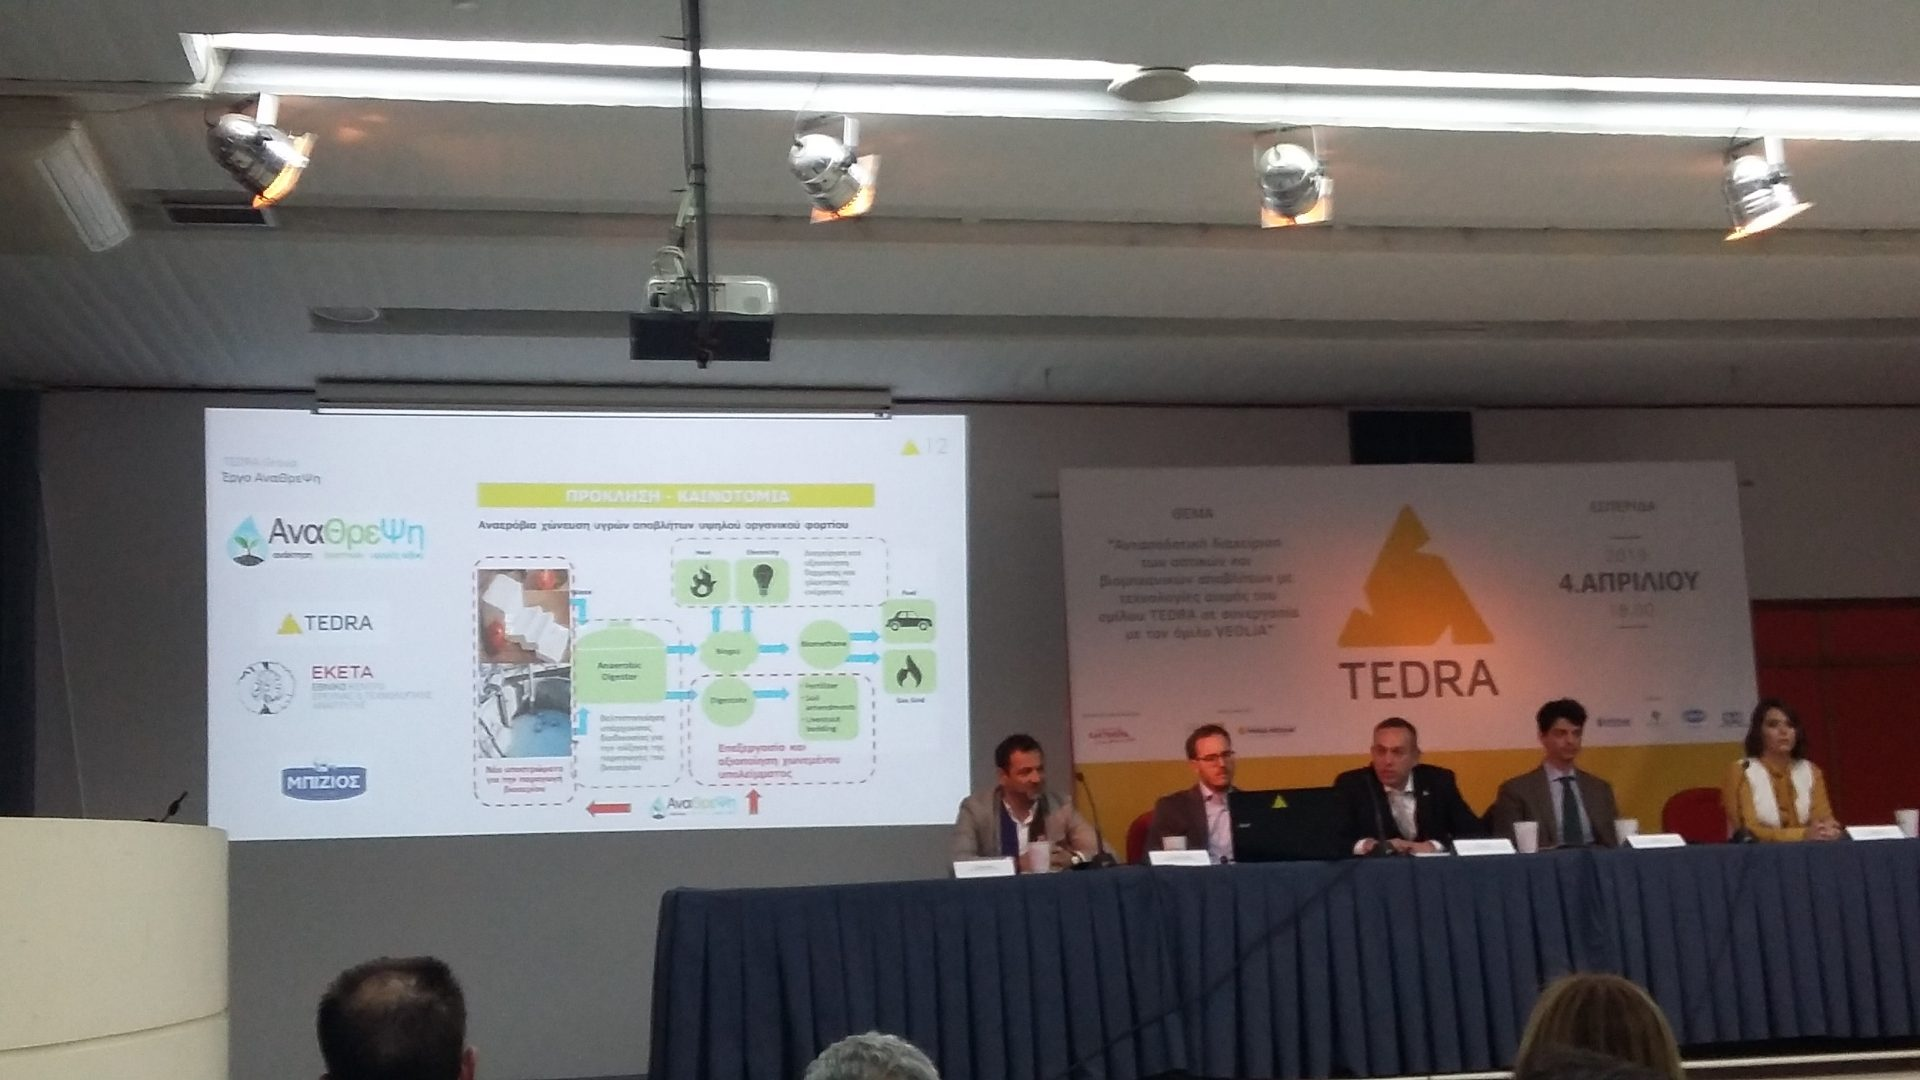 Presentation of ANATHREPSI project during the TEDRA Group conference